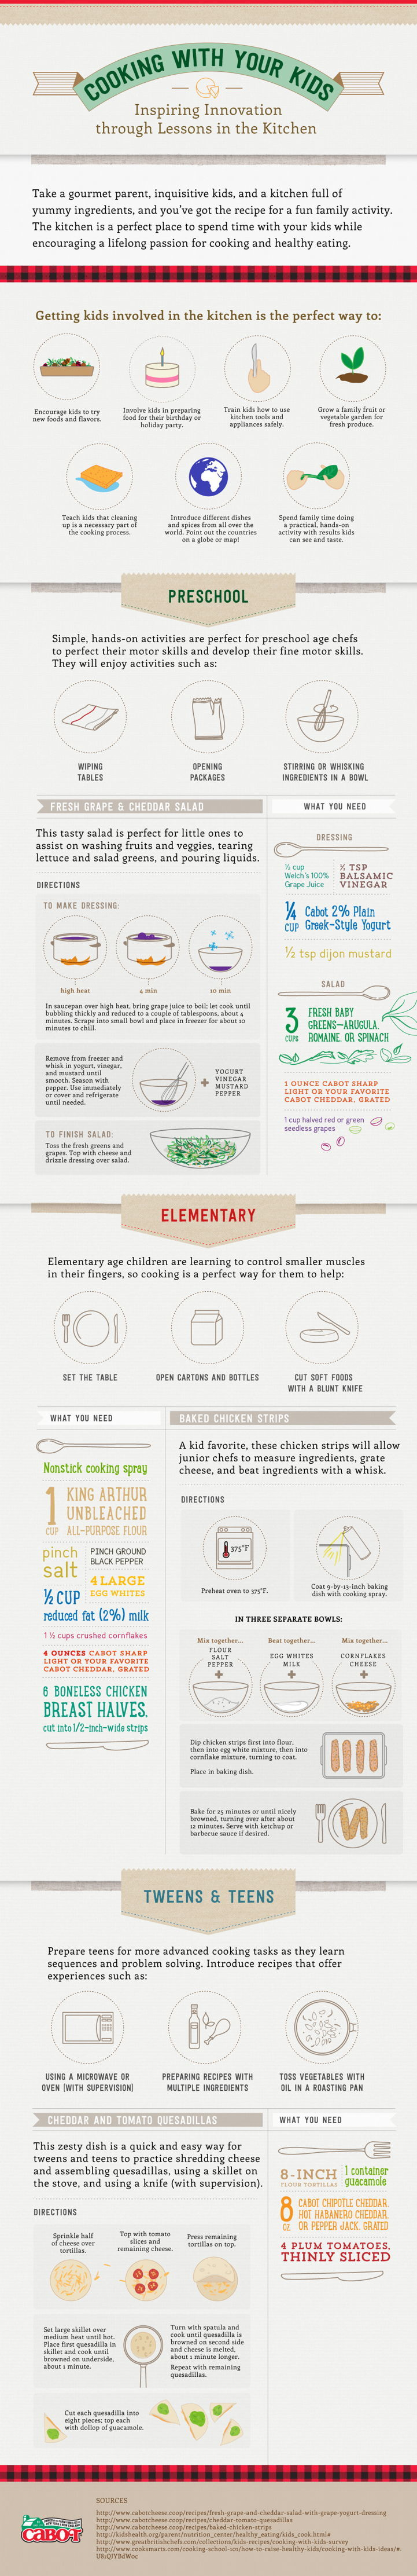 Cooking with Kids Infographic